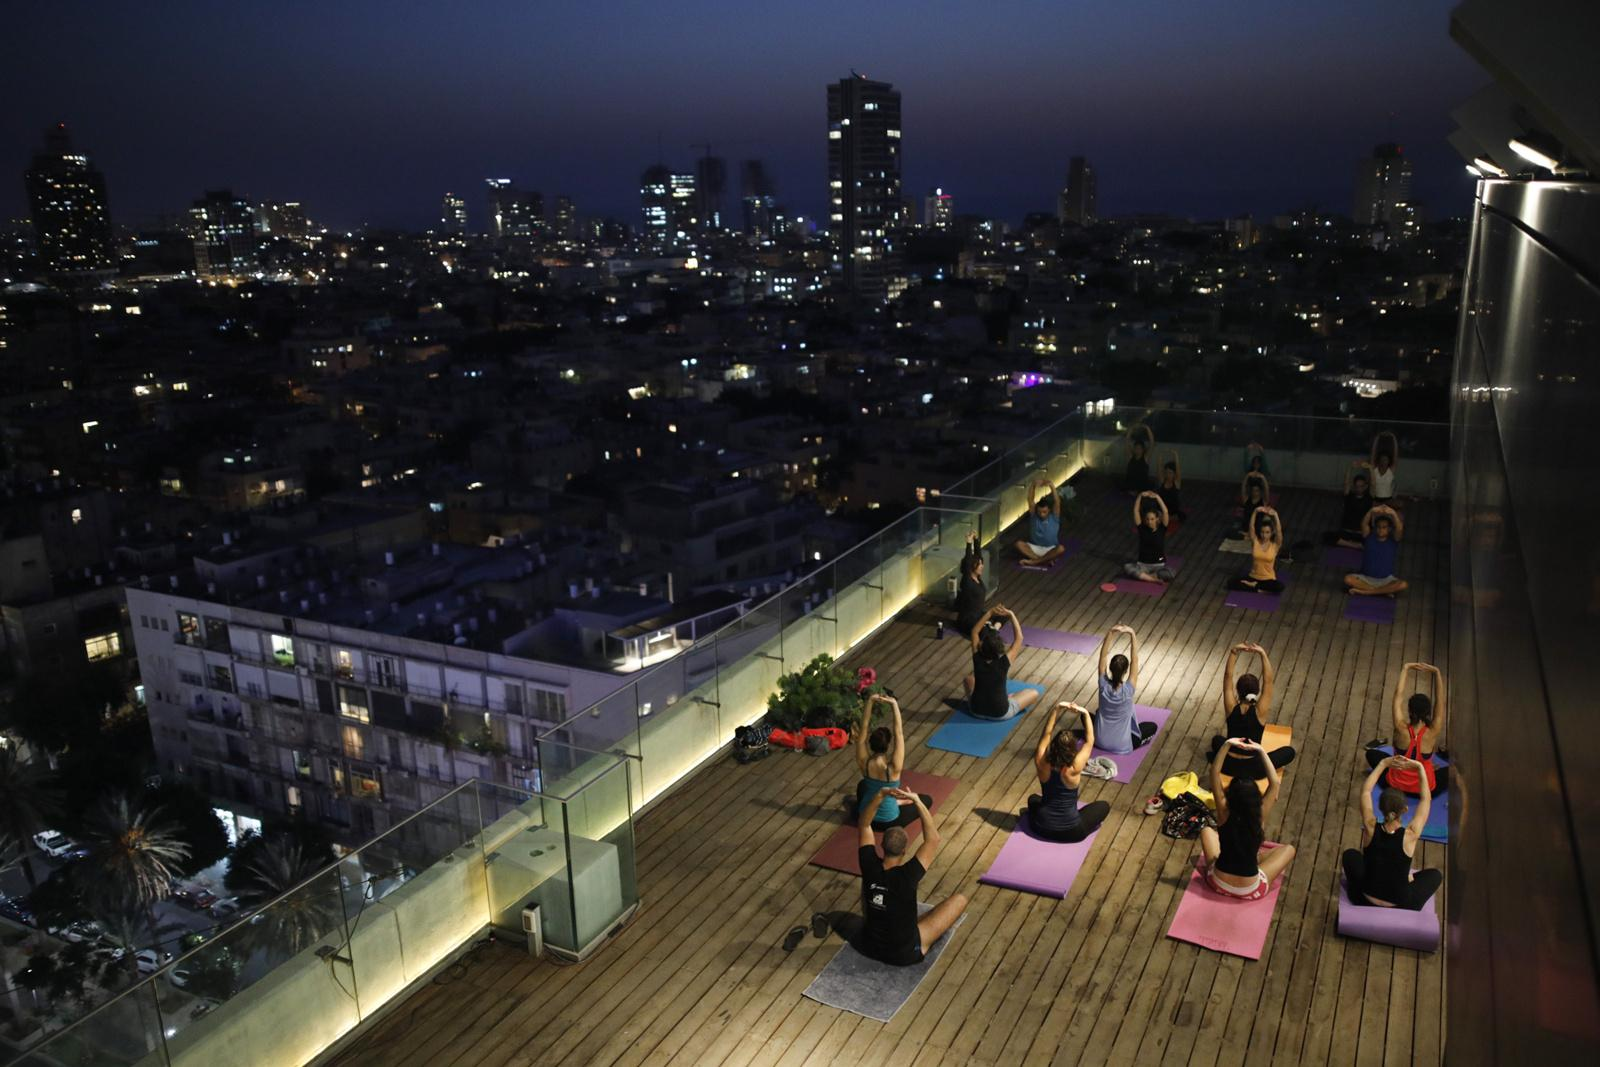 People participate in a yoga session on the rooftop of the city's municipality building, October 19, 2017, Tel Aviv, Israel.